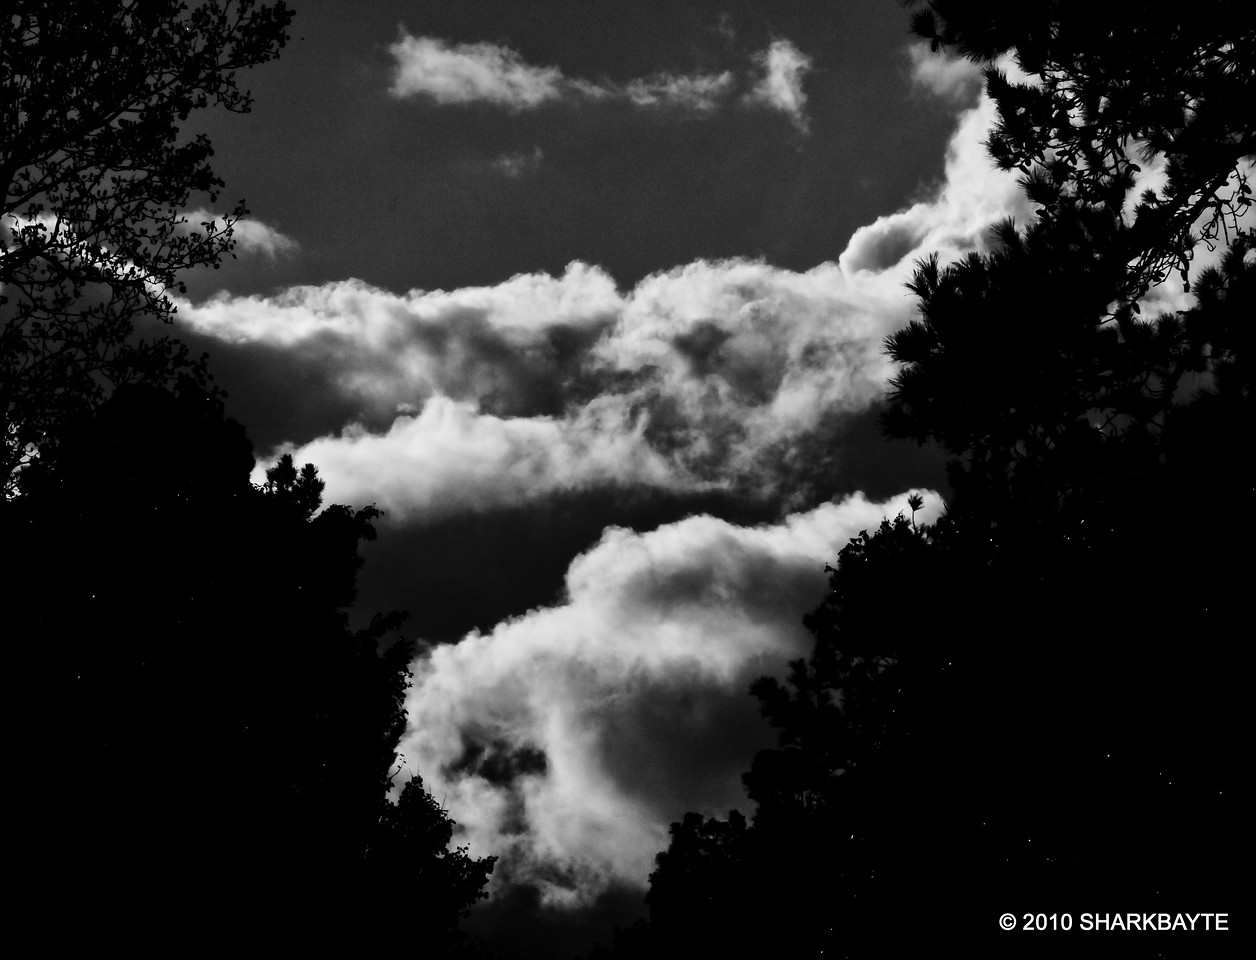 The clouds in black and white. #365Project day 311 (2010.11.07) @sharkbayte